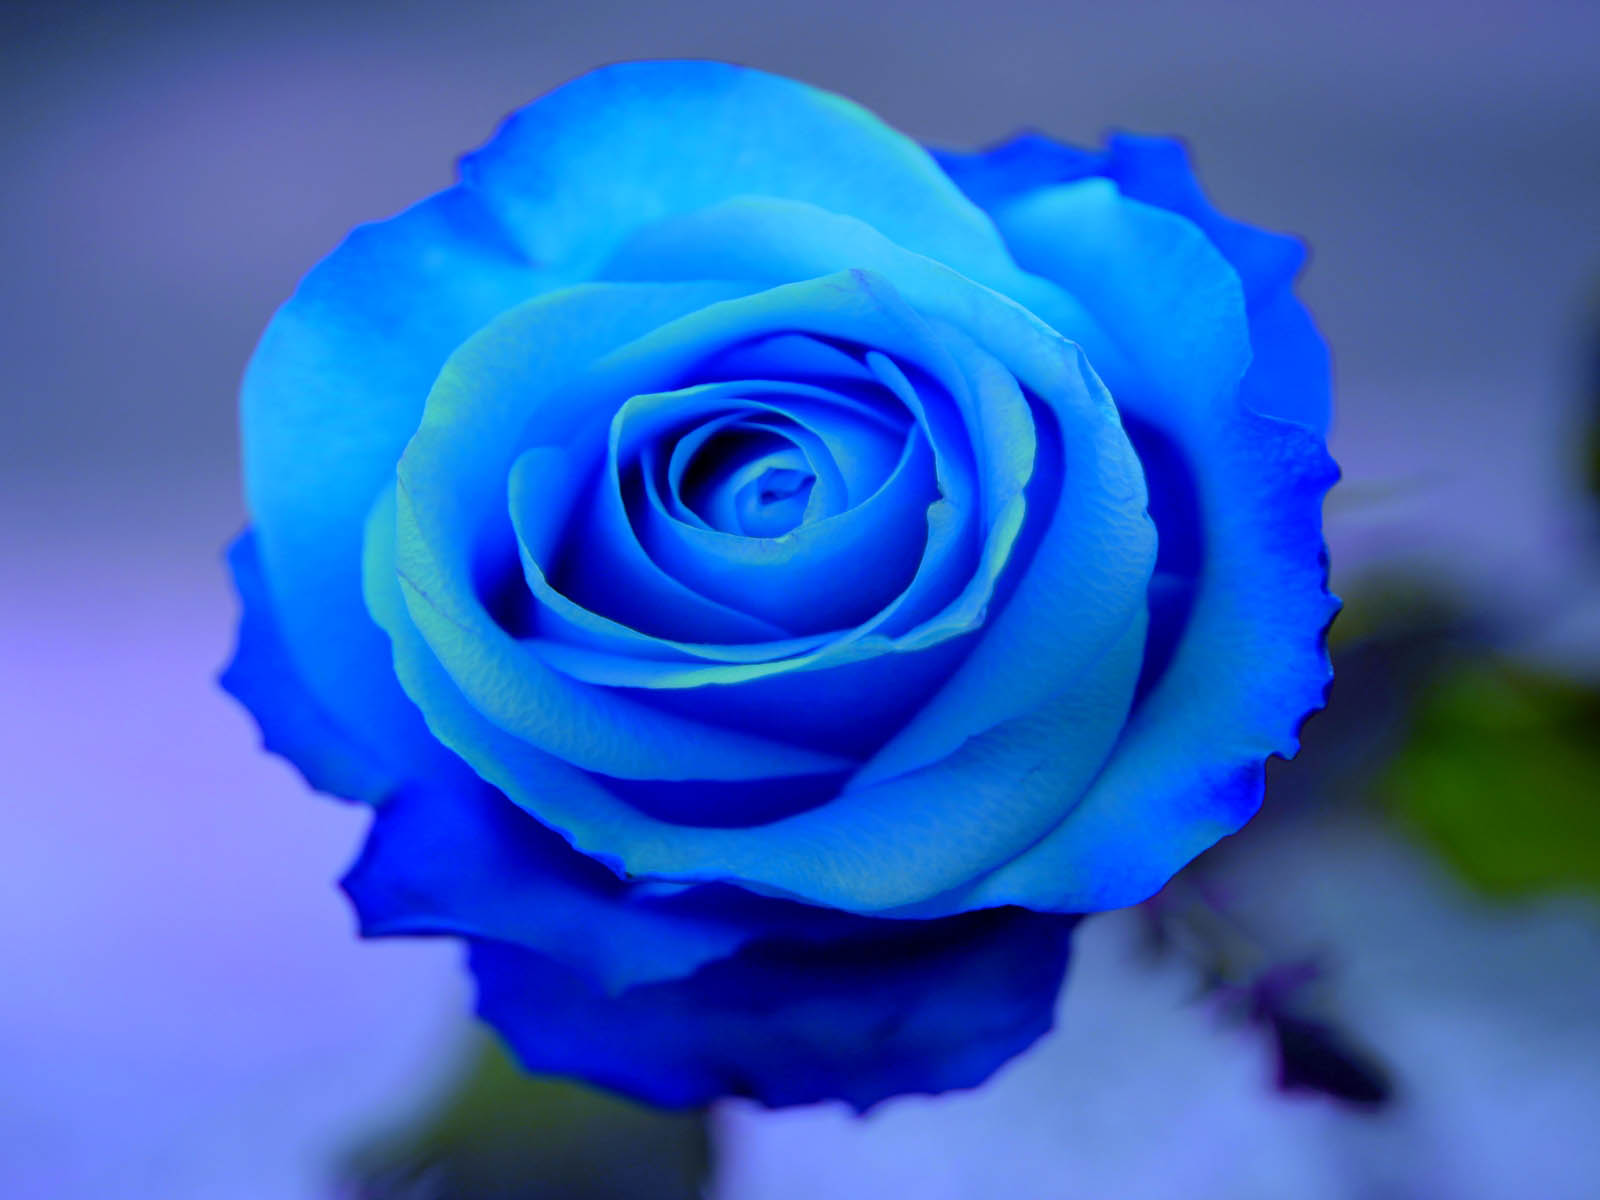 Tag Blue Rose Wallpapers Backgrounds Photos Picturesand Images 1600x1200